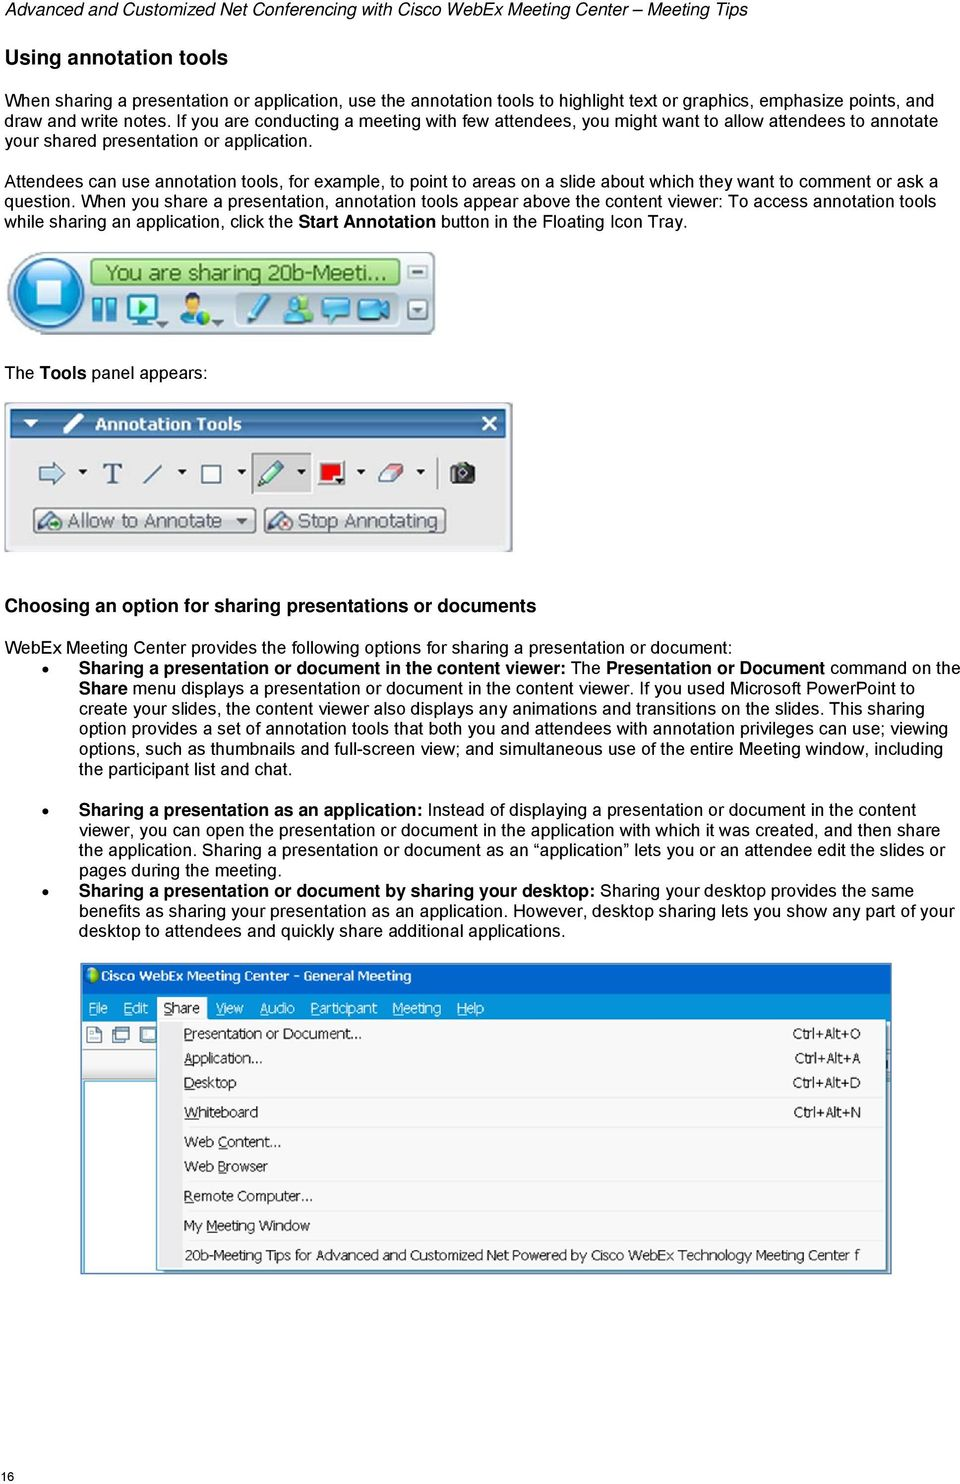 Advanced and Customized Net Conference With Cisco WebEx Meeting